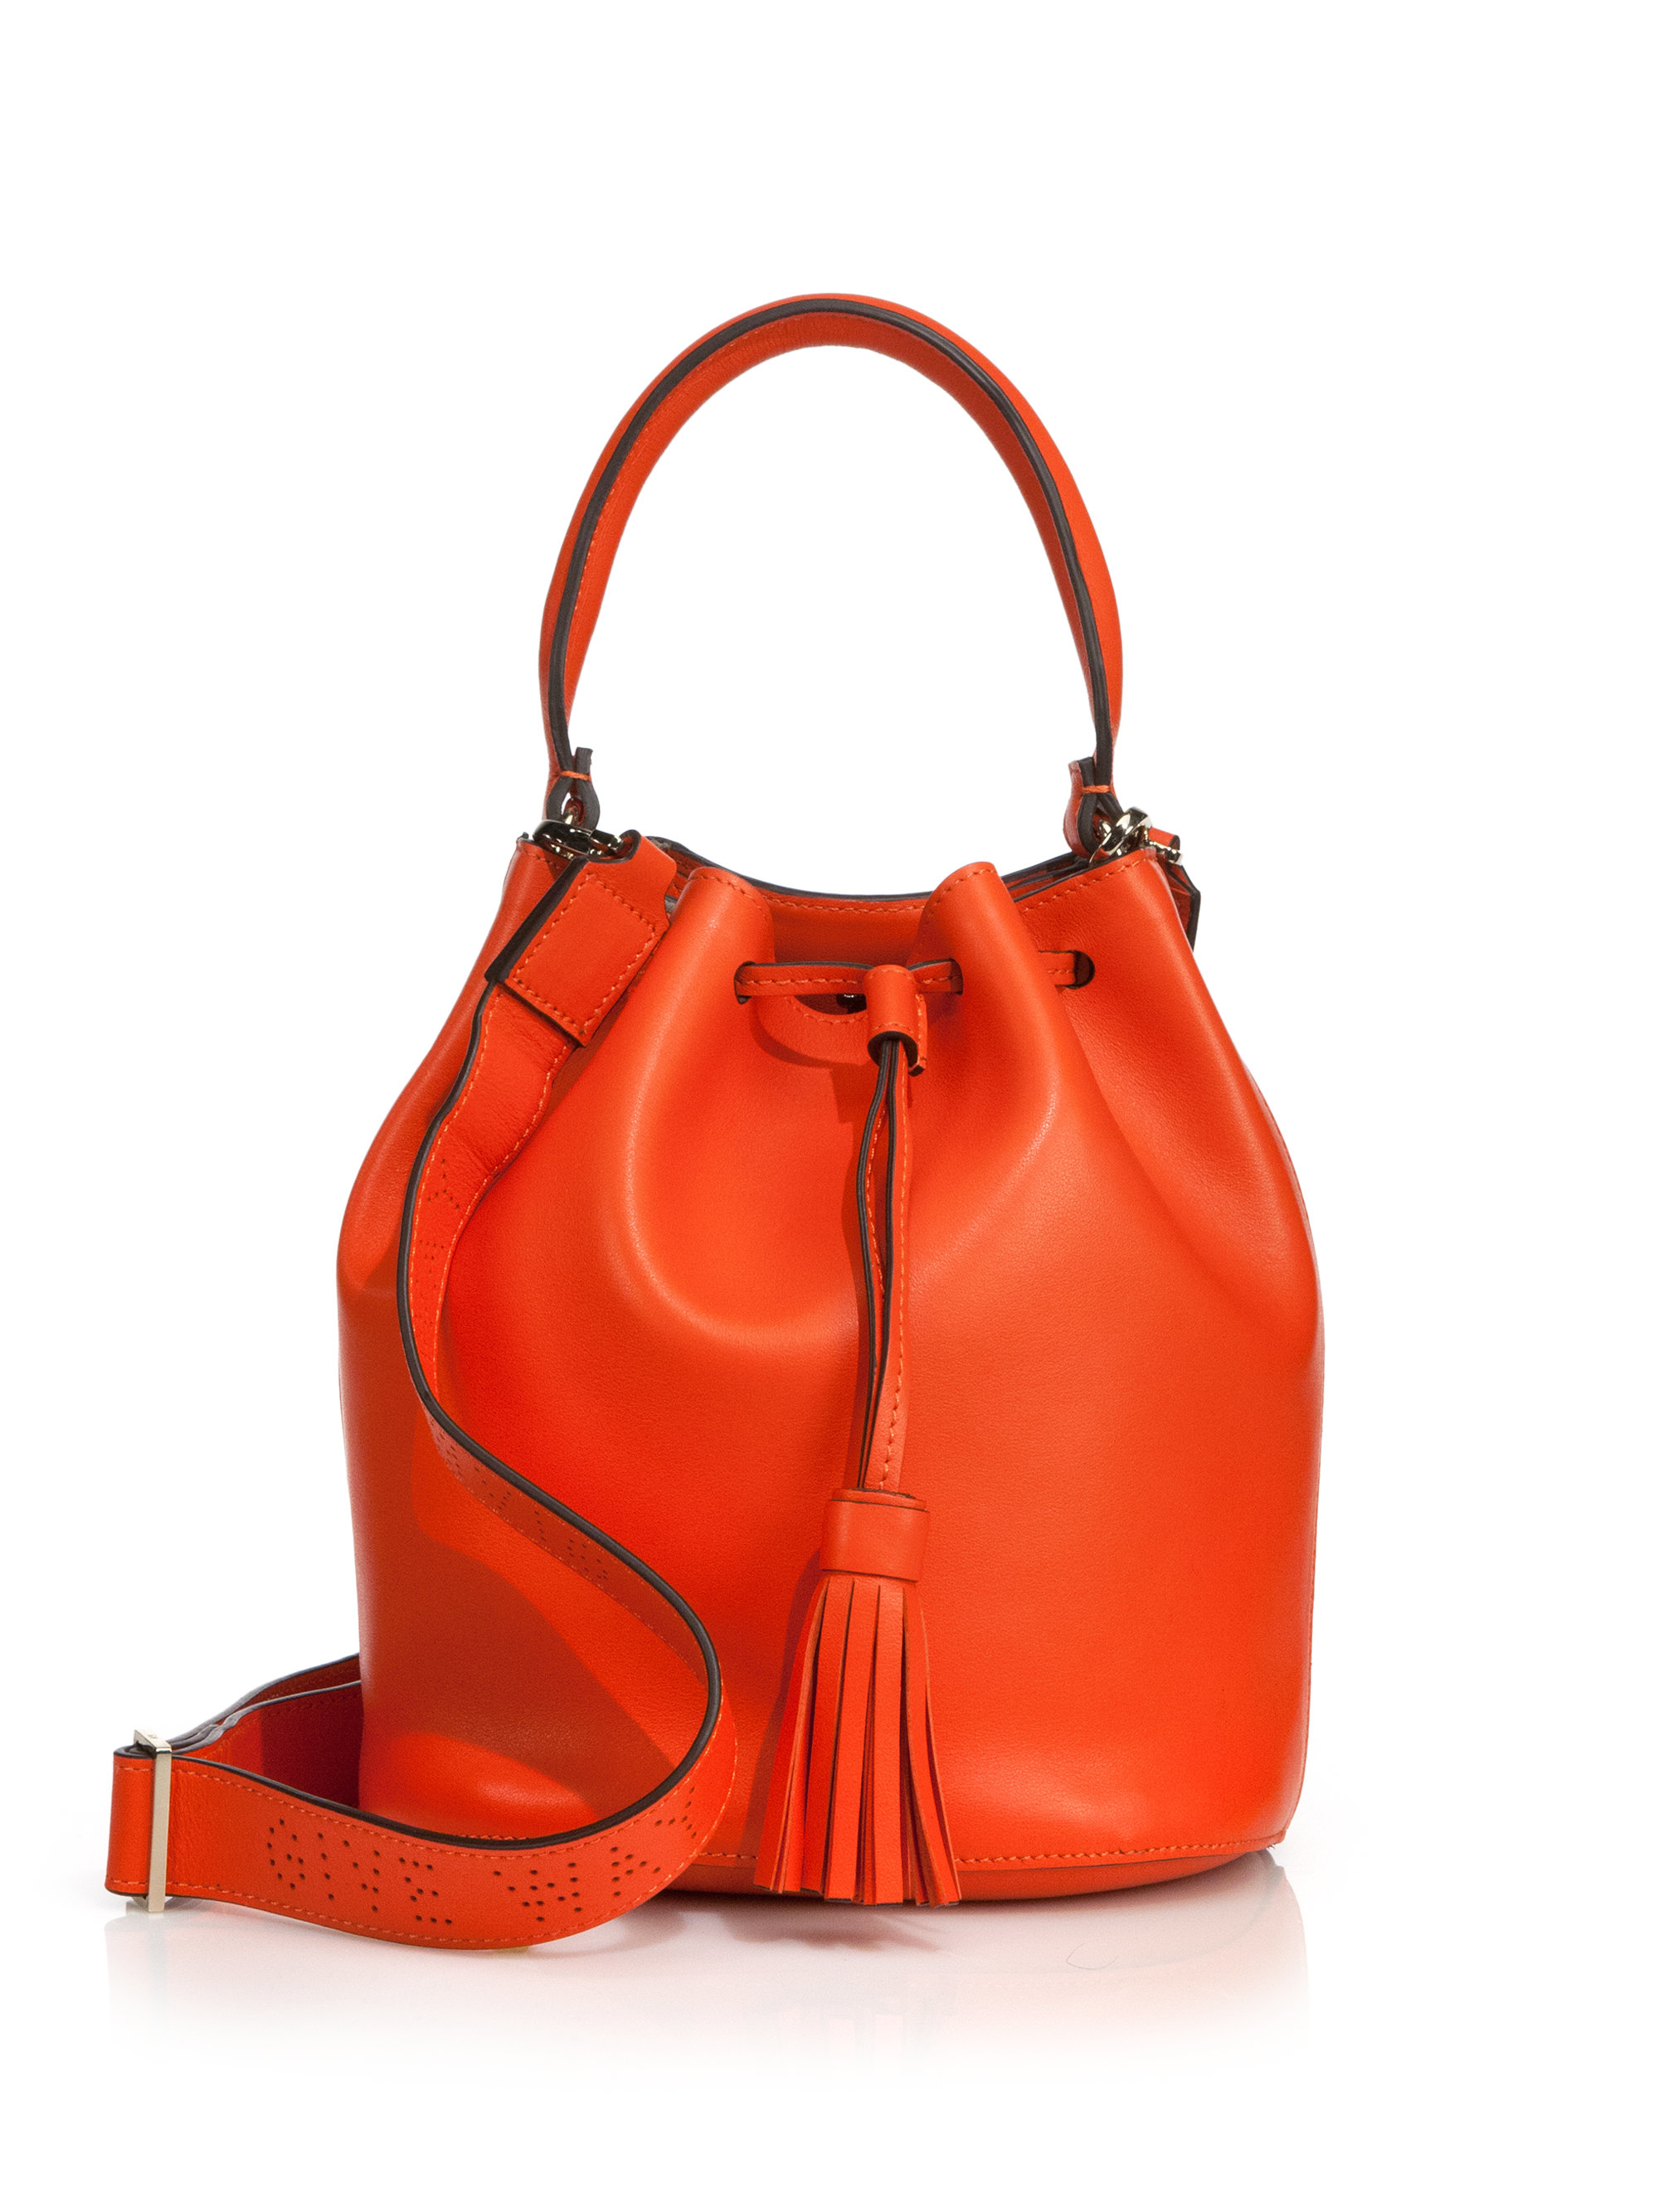 Shop Wilsons Leather for leather bucket & hobo bags and more. Get high quality leather bucket & hobo bags at exceptional values/5(26).